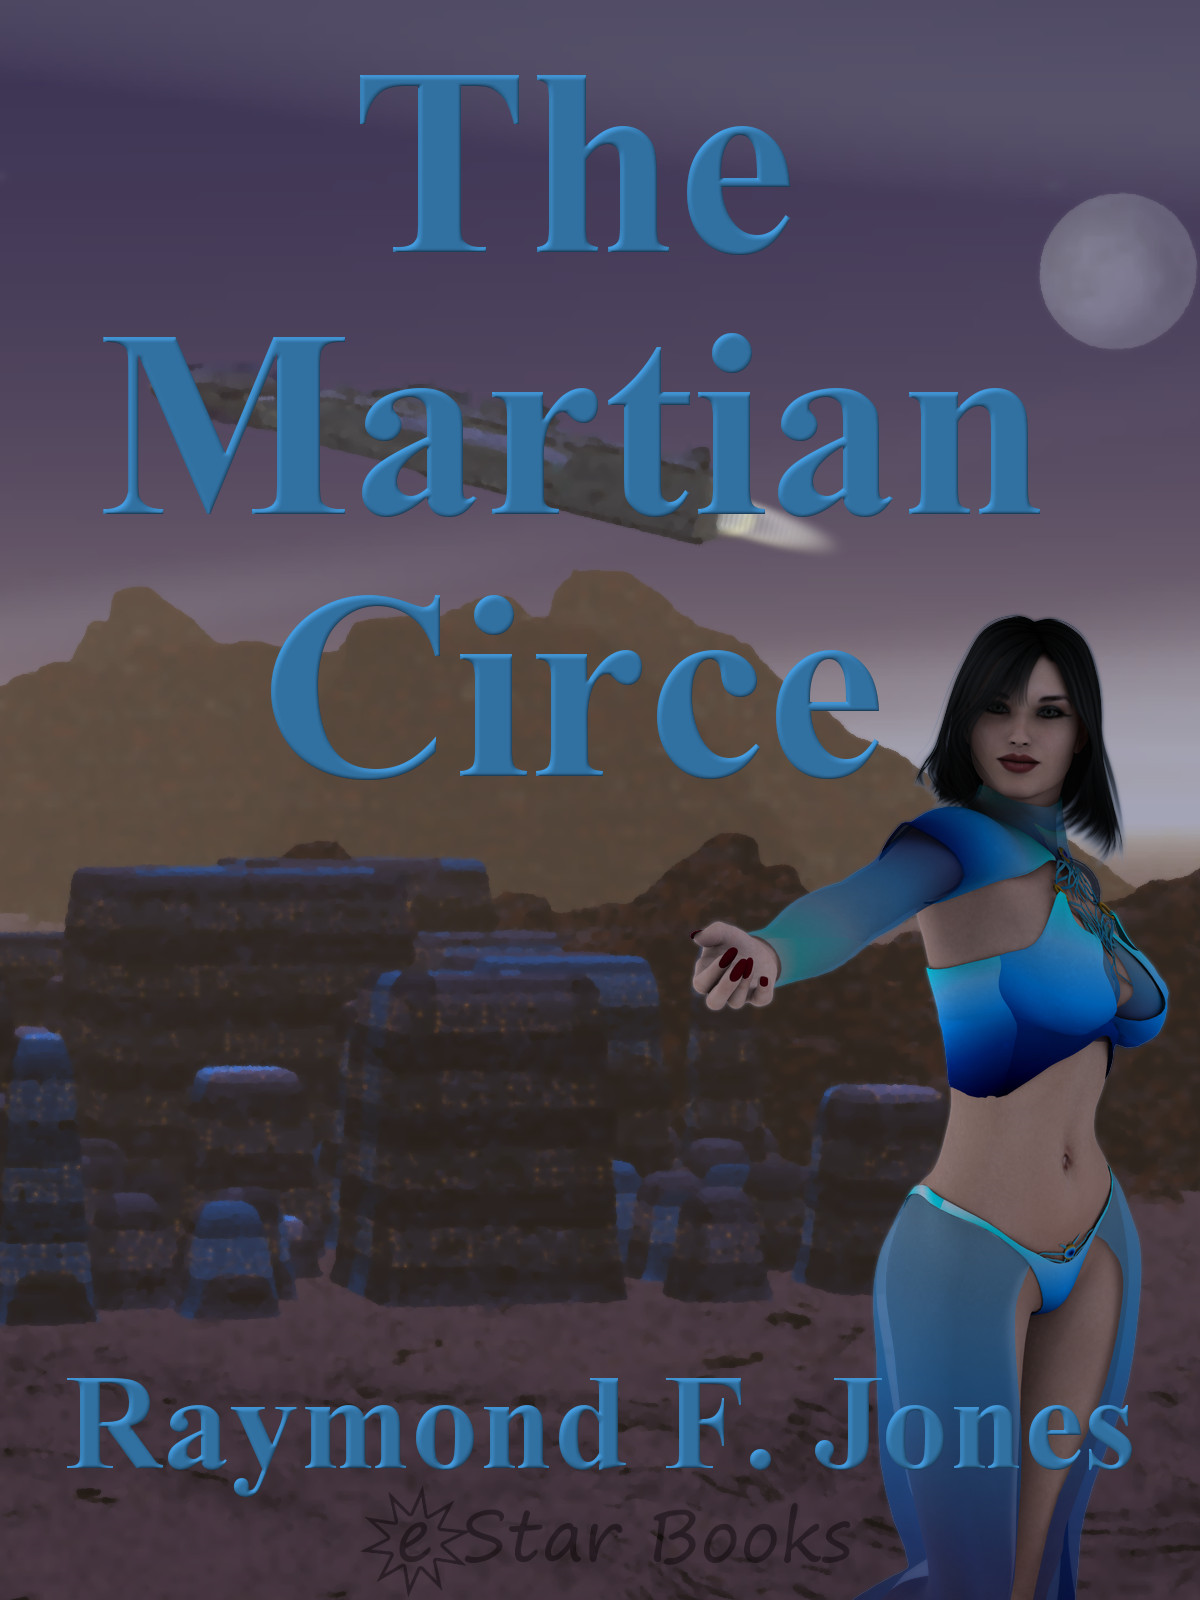 The Martian Circe